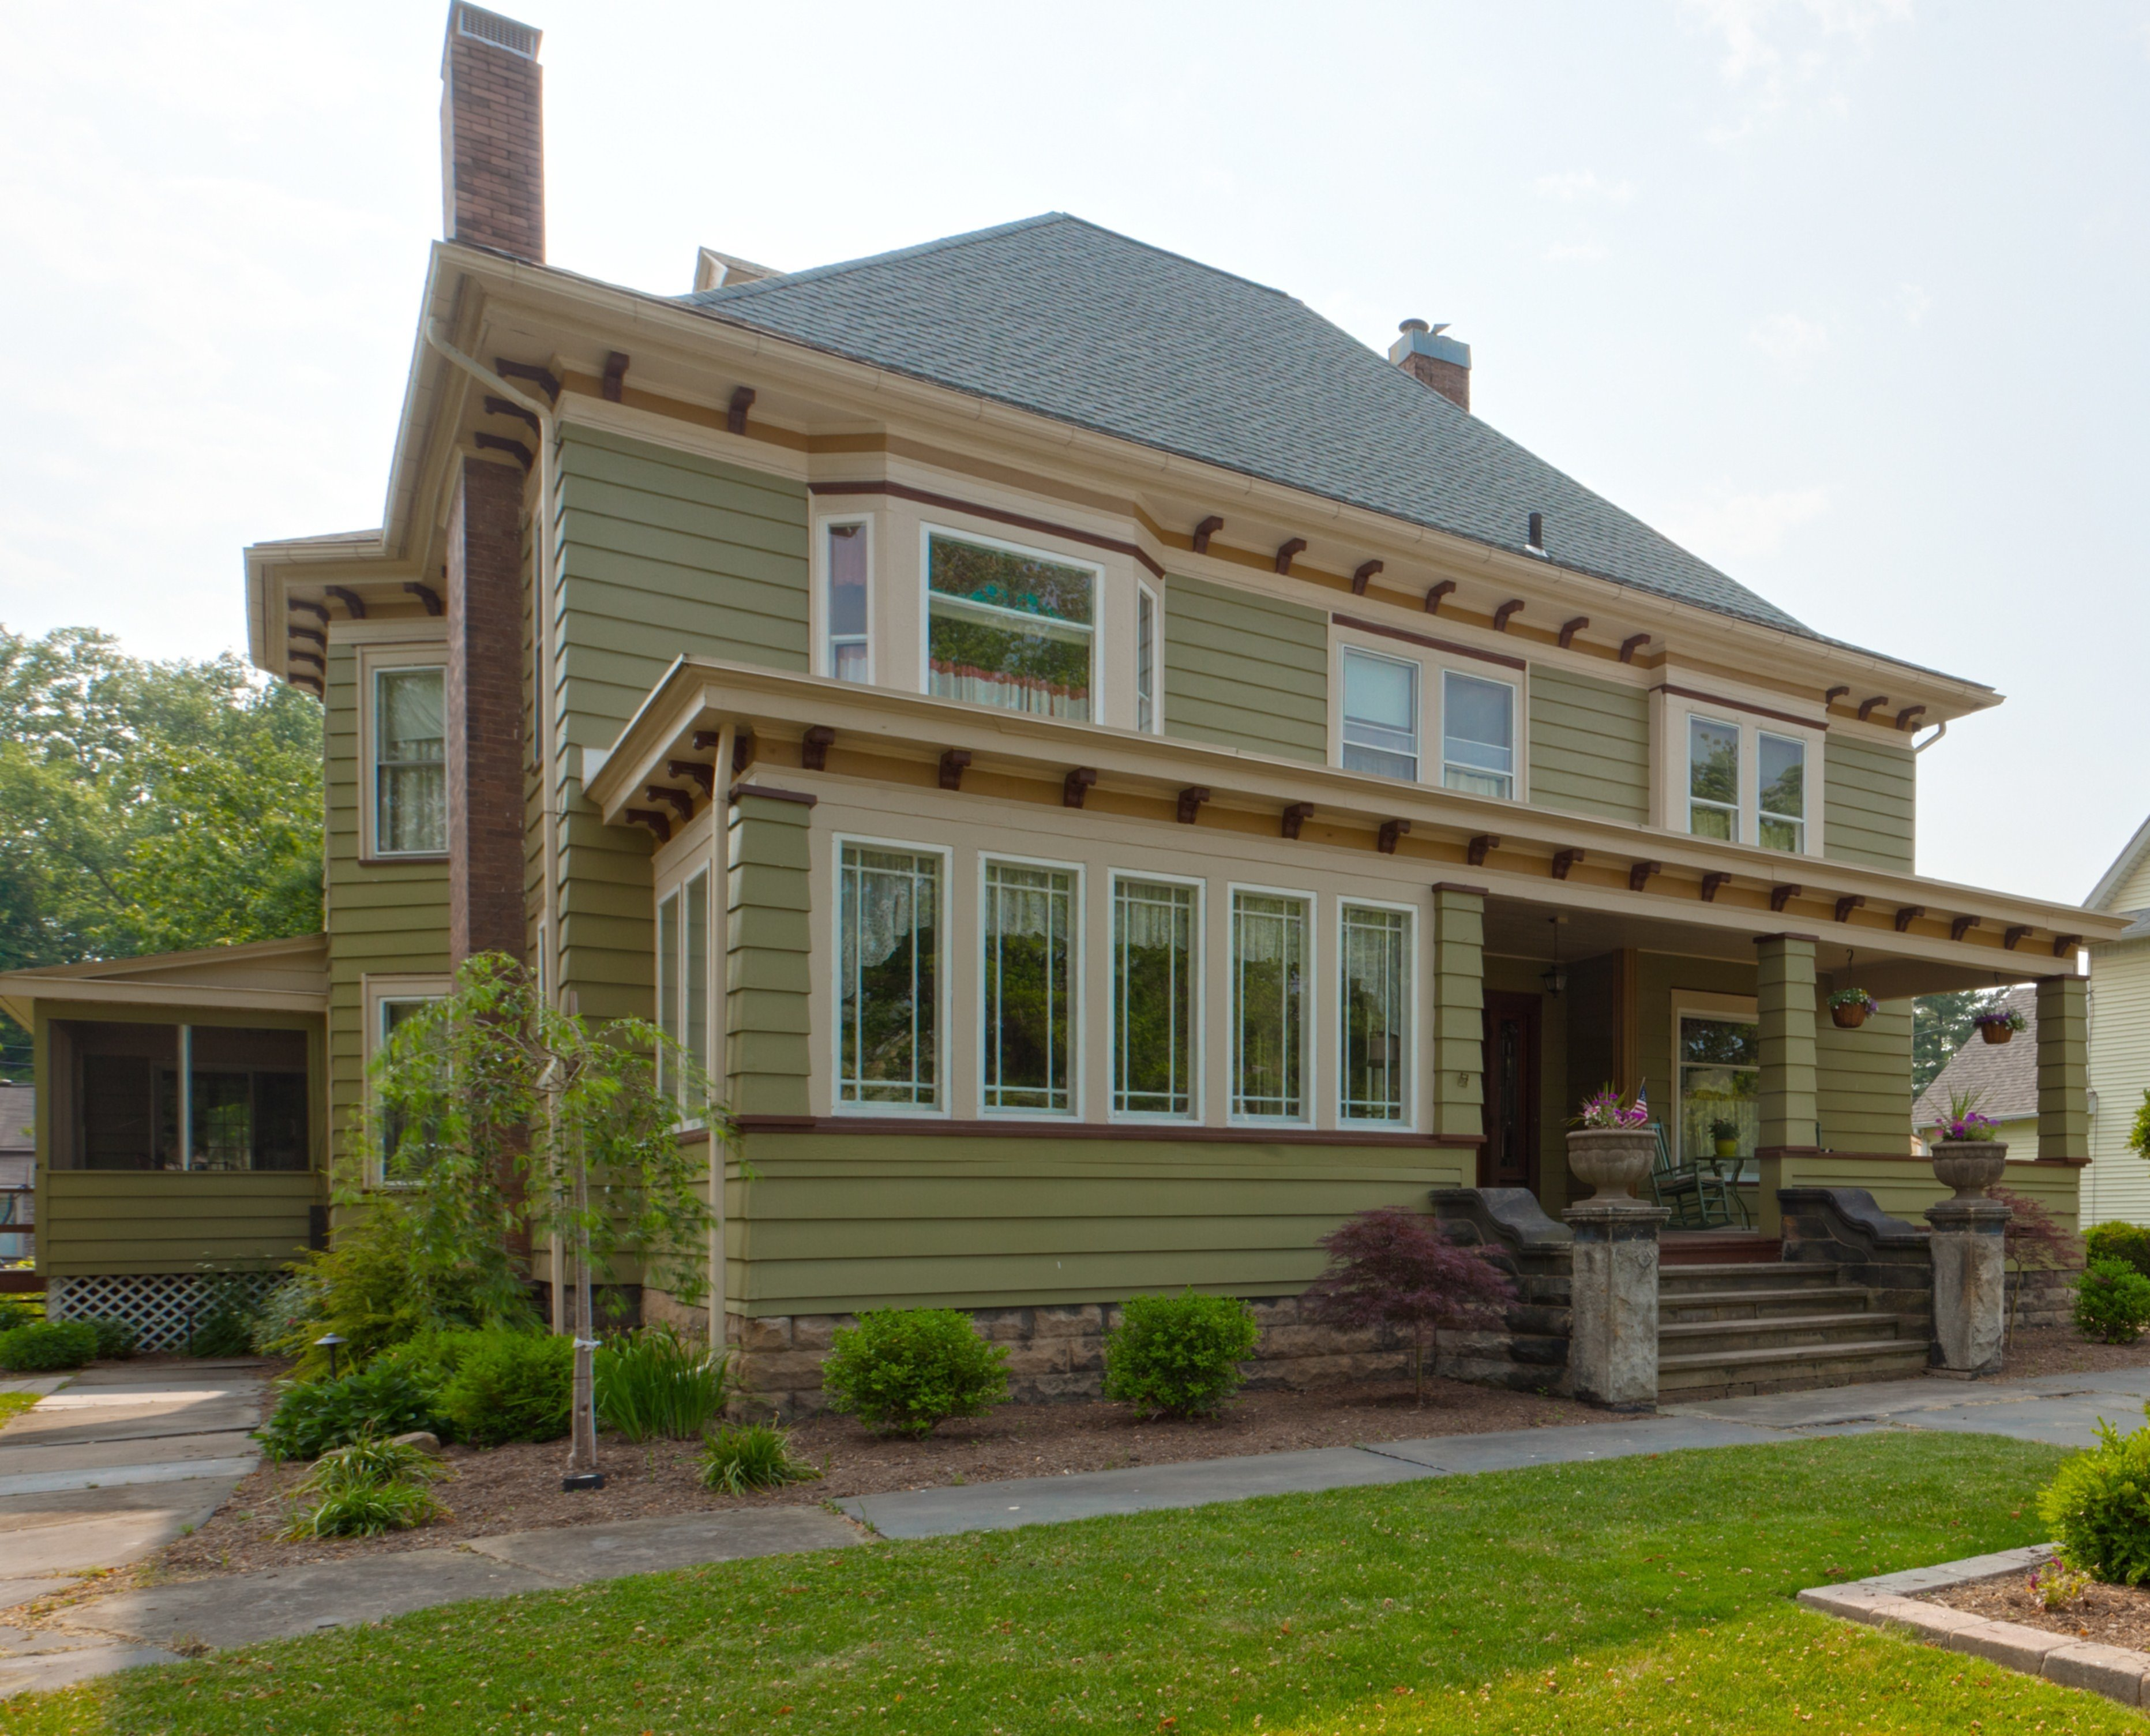 Strasburg Bed and Breakfast